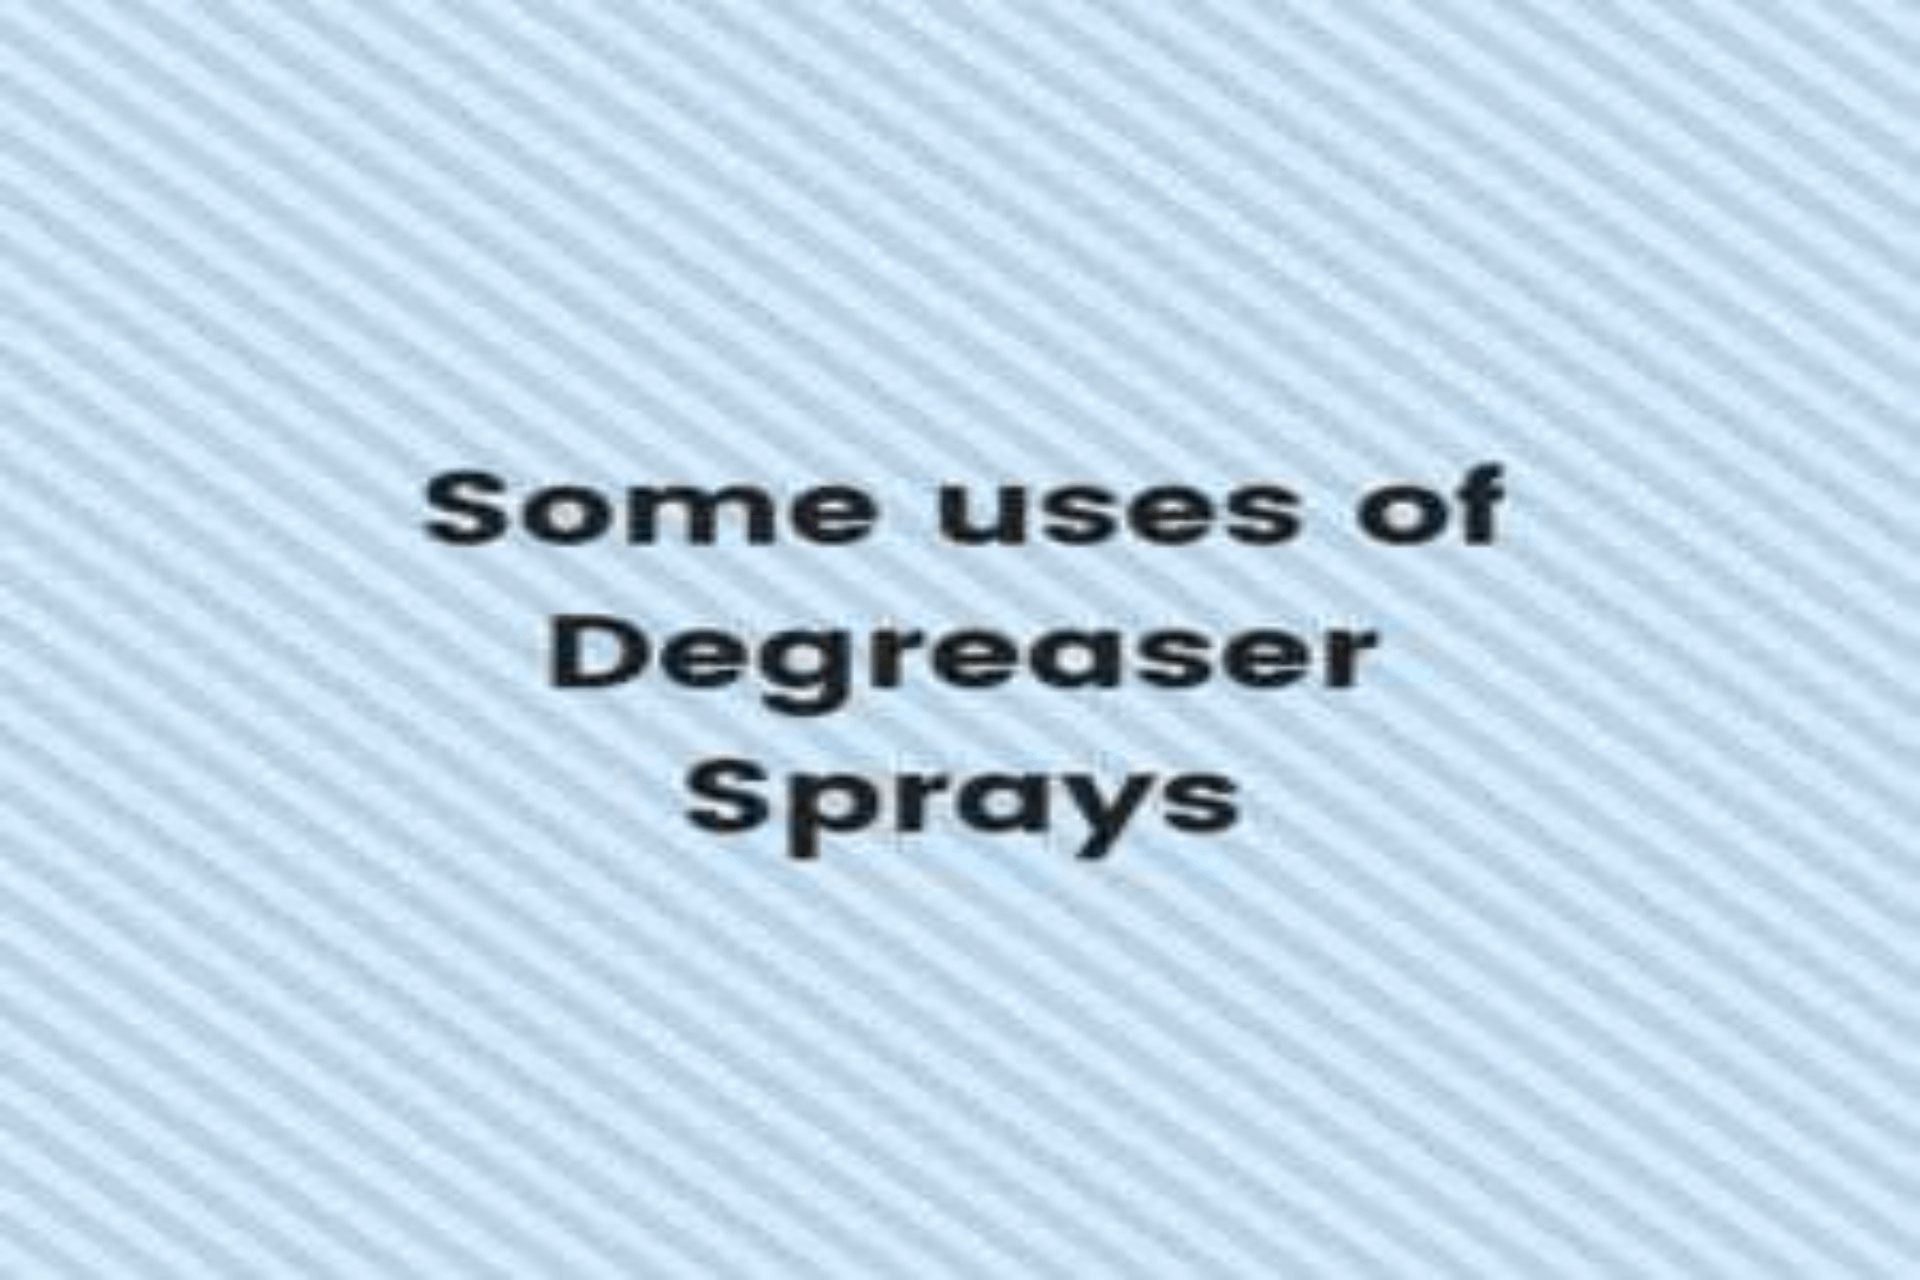 some uses of degreaser sprays